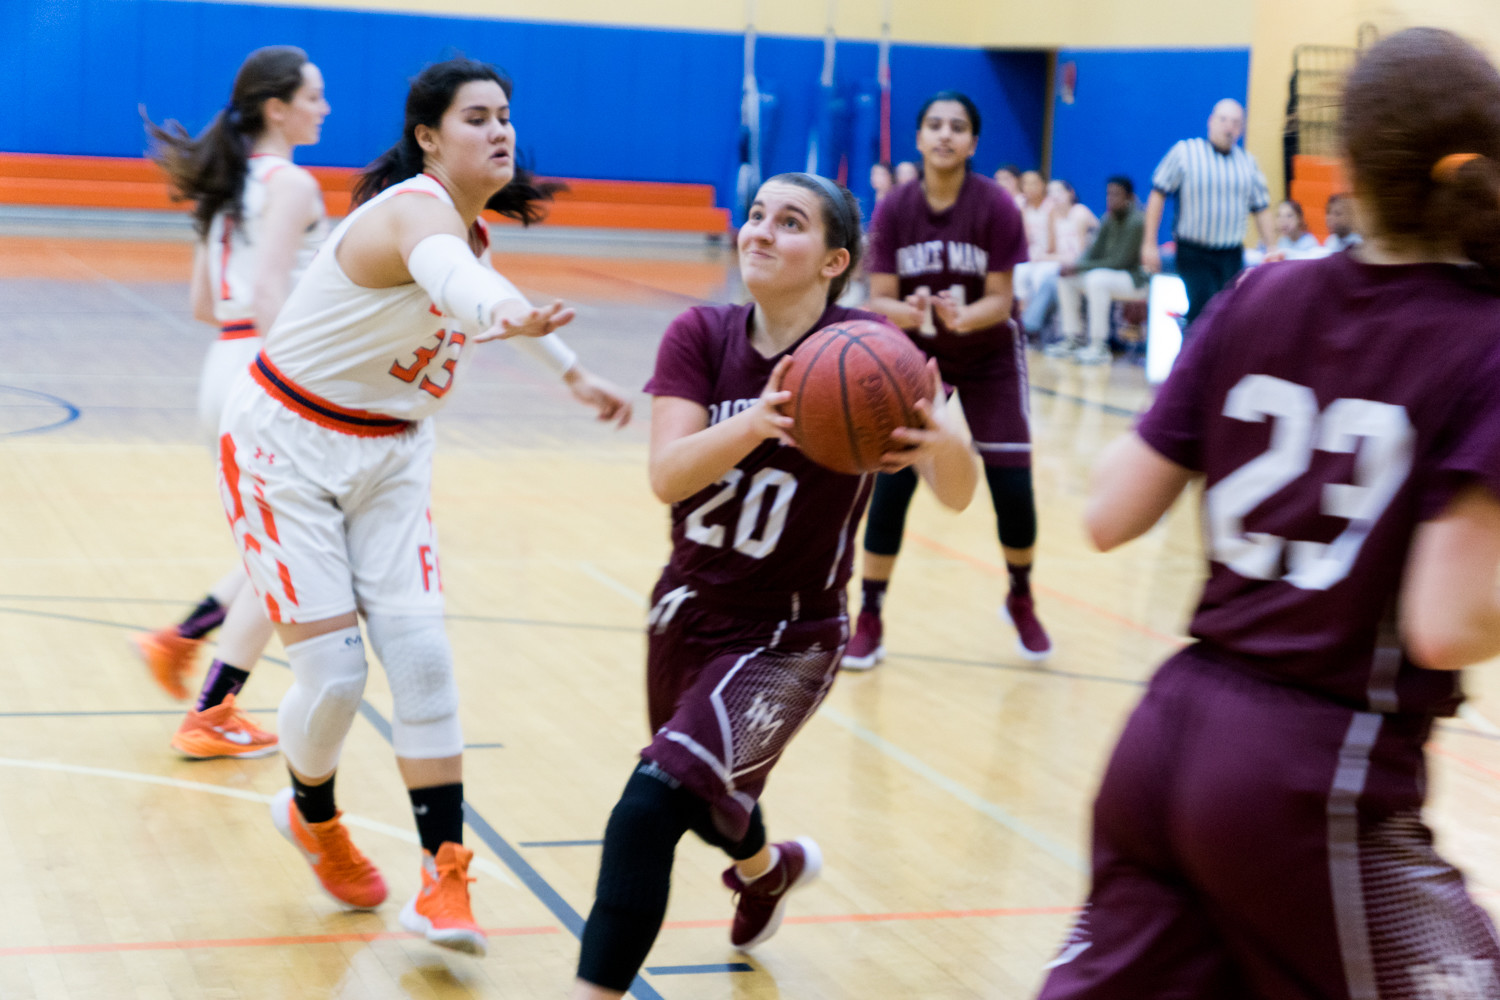 Horace Mann senior guard Jane Frankel drives the lane for a bucket in the Lions' win over Fieldston.